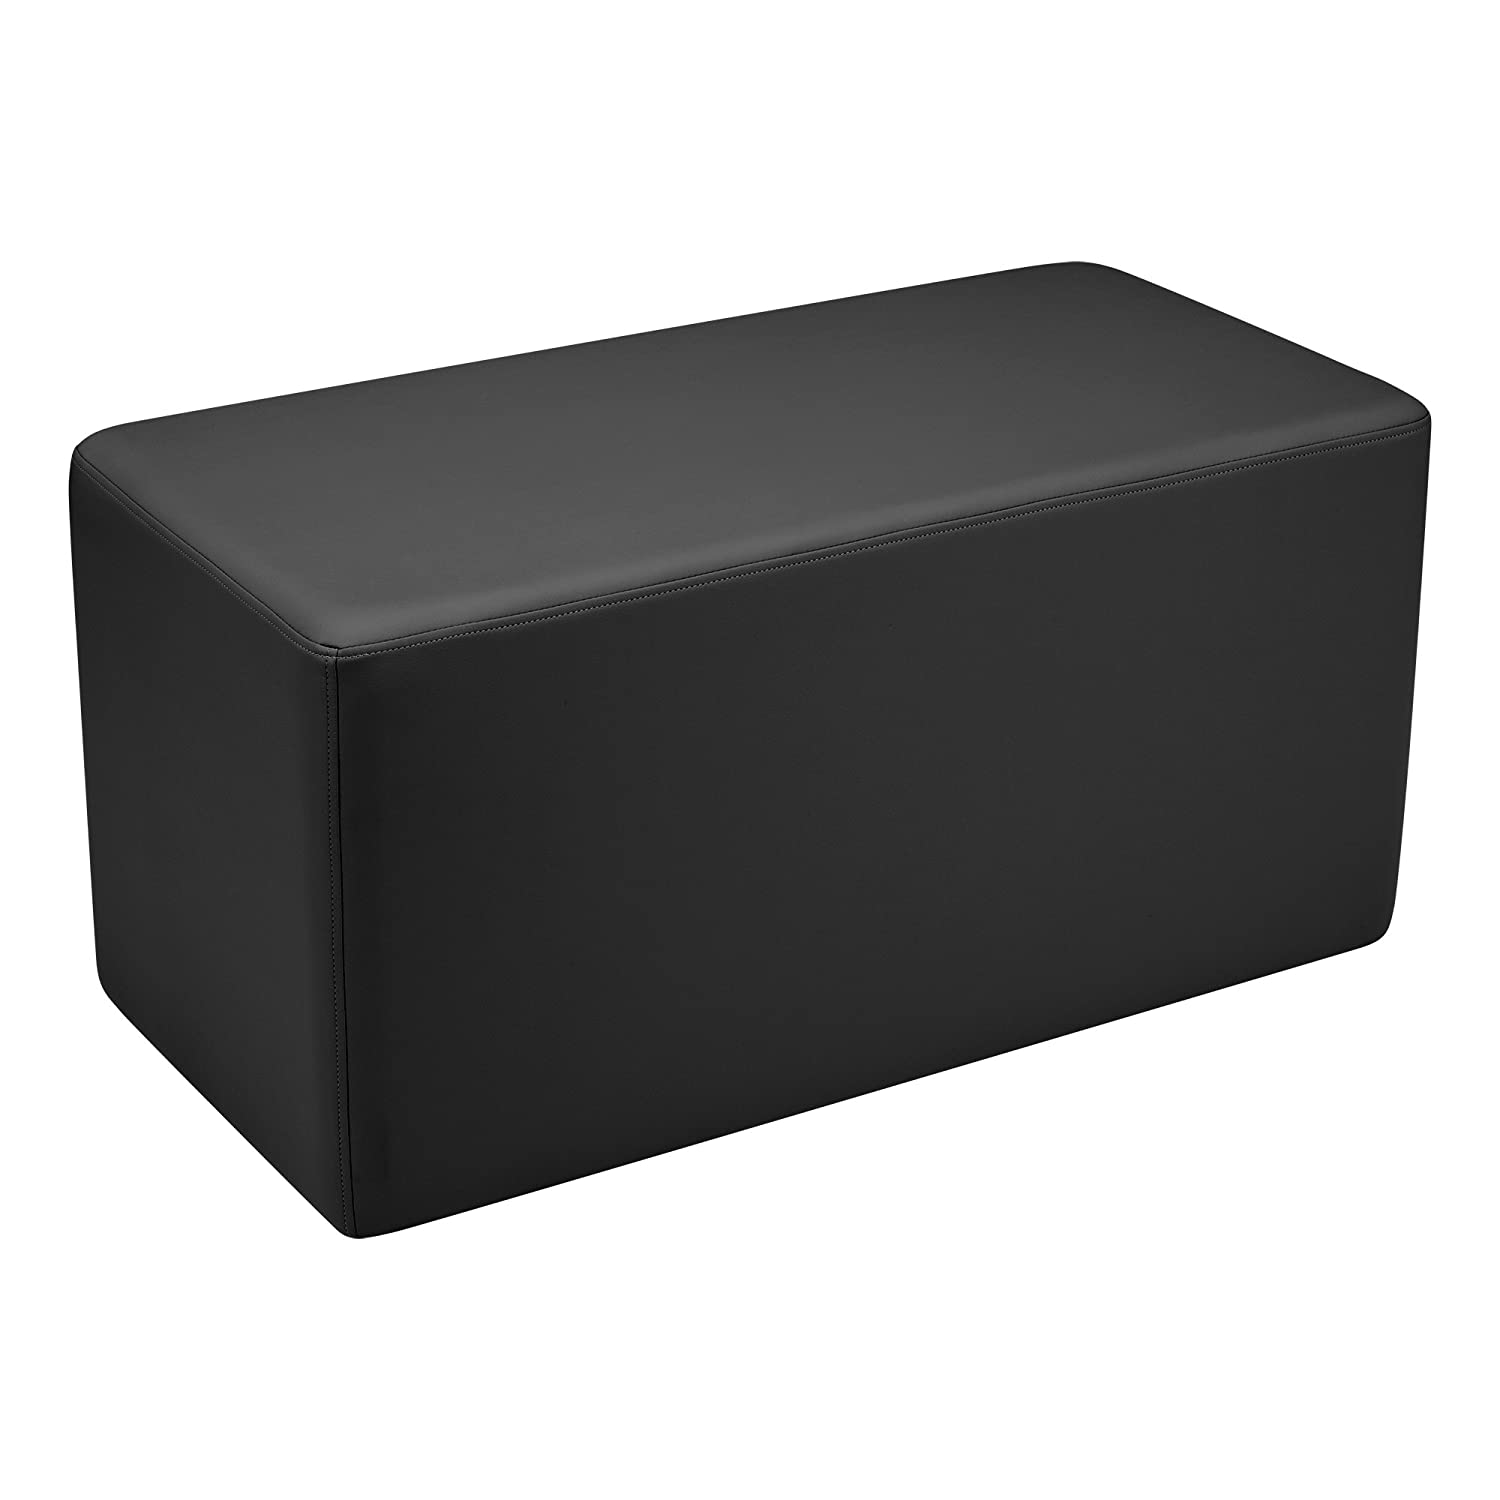 Learniture Shapes Vinyl Soft Seating Rectangle 18